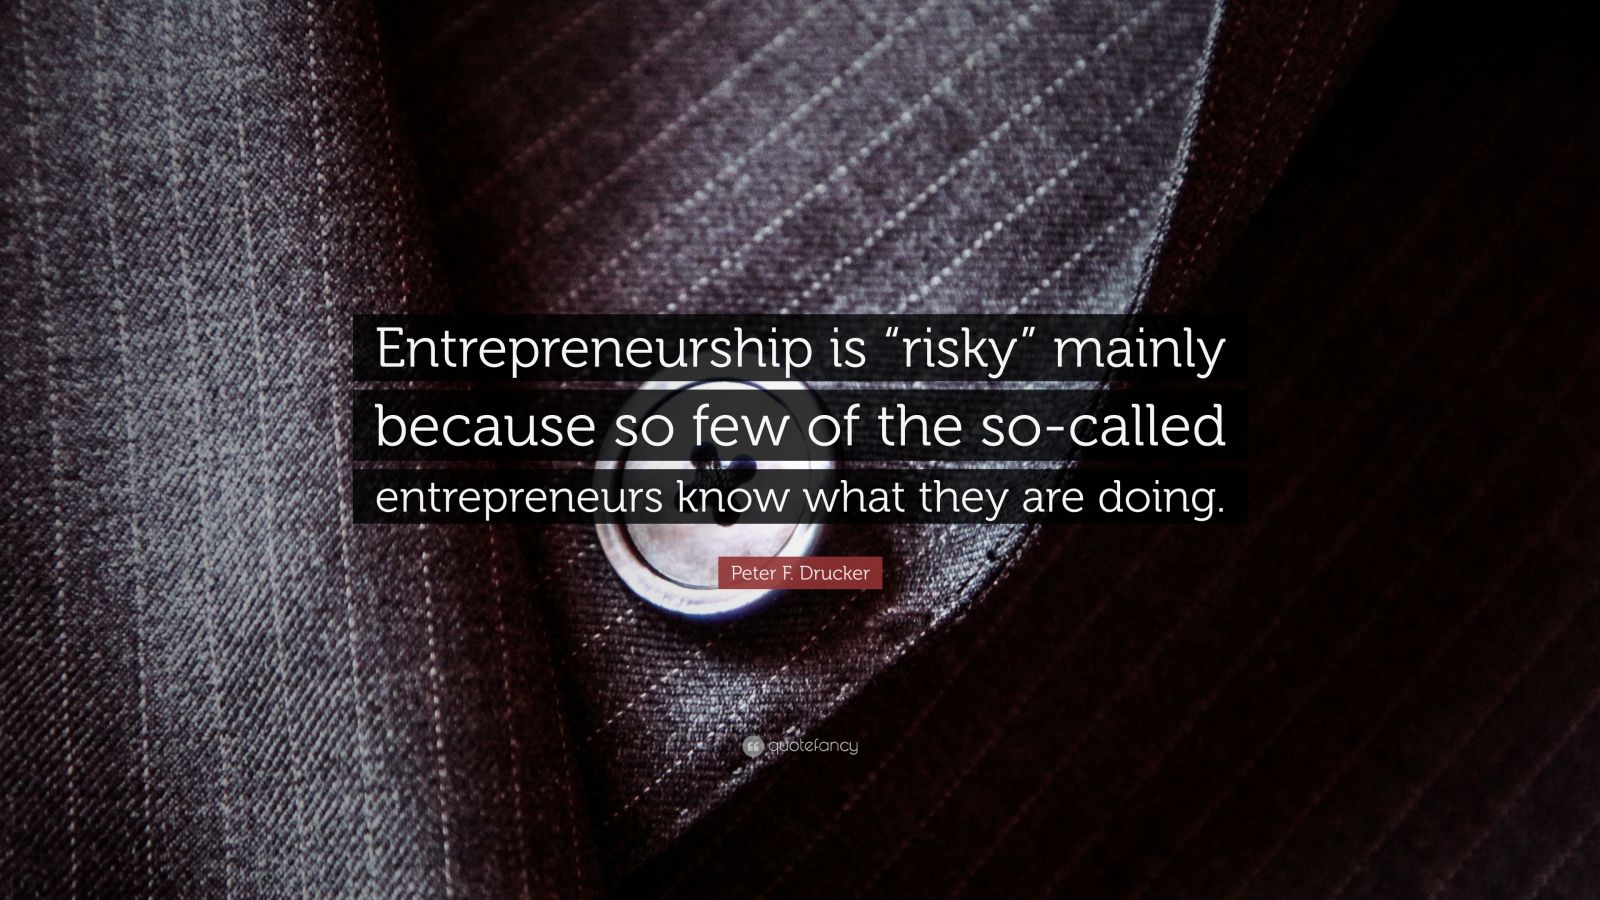 """Peter F. Drucker Quote: """"Entrepreneurship is """"risky"""" mainly because so few of the so-called entrepreneurs know what they are doing."""""""